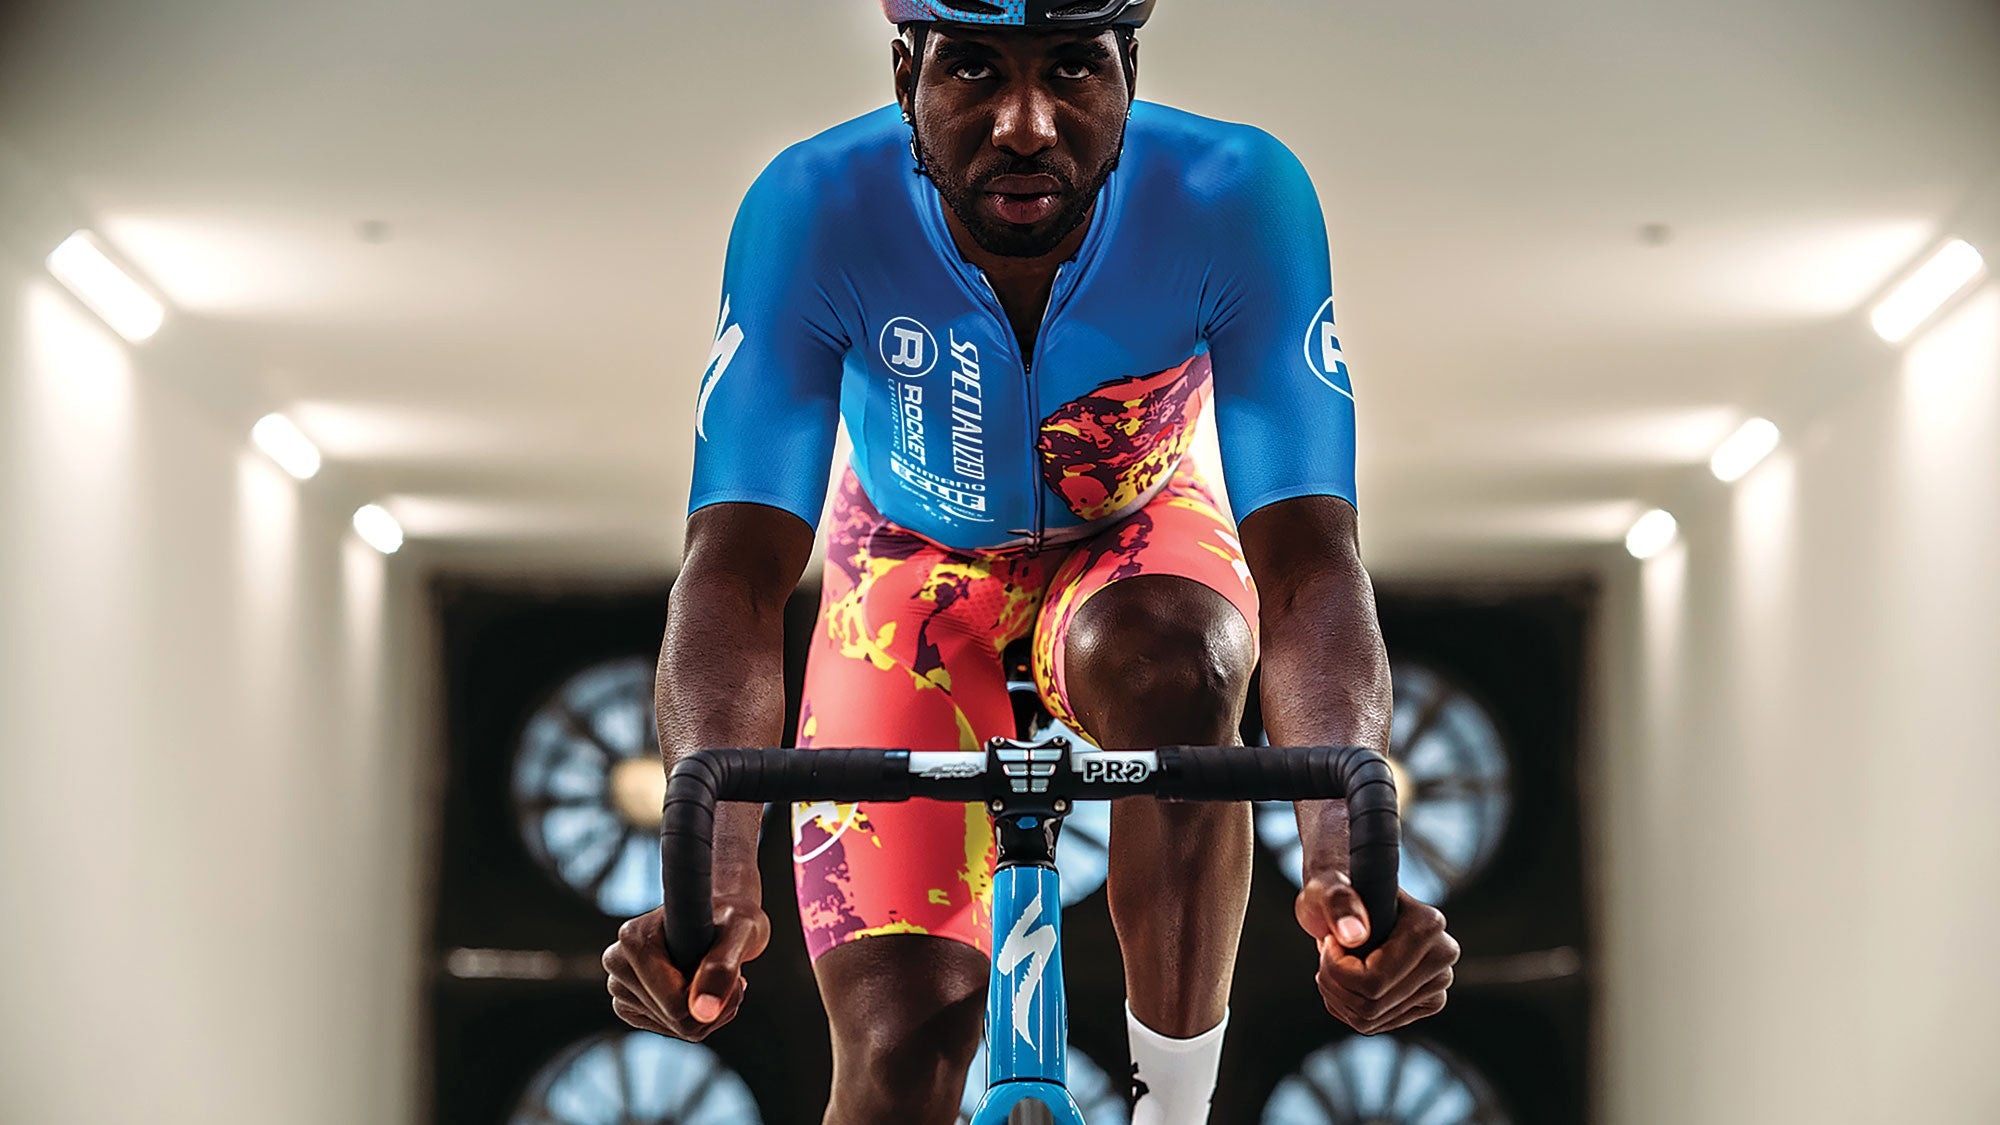 Man facing the camera, riding a Specialized bike on rollers in a wind tunnel